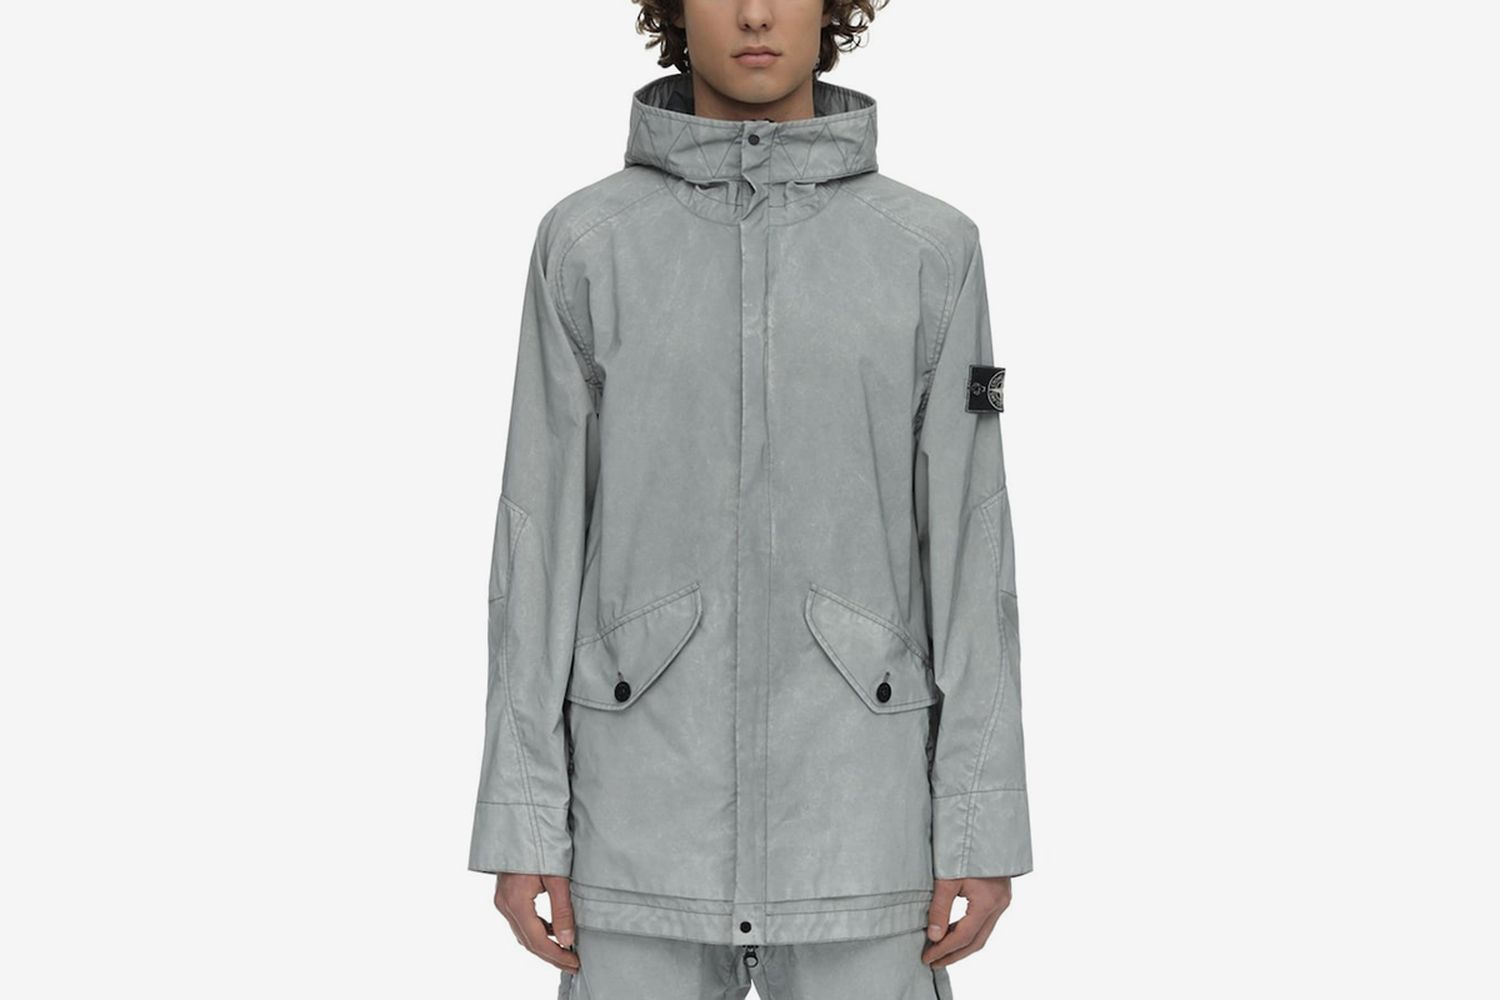 LVR Exclusive Coated Reflective Parka